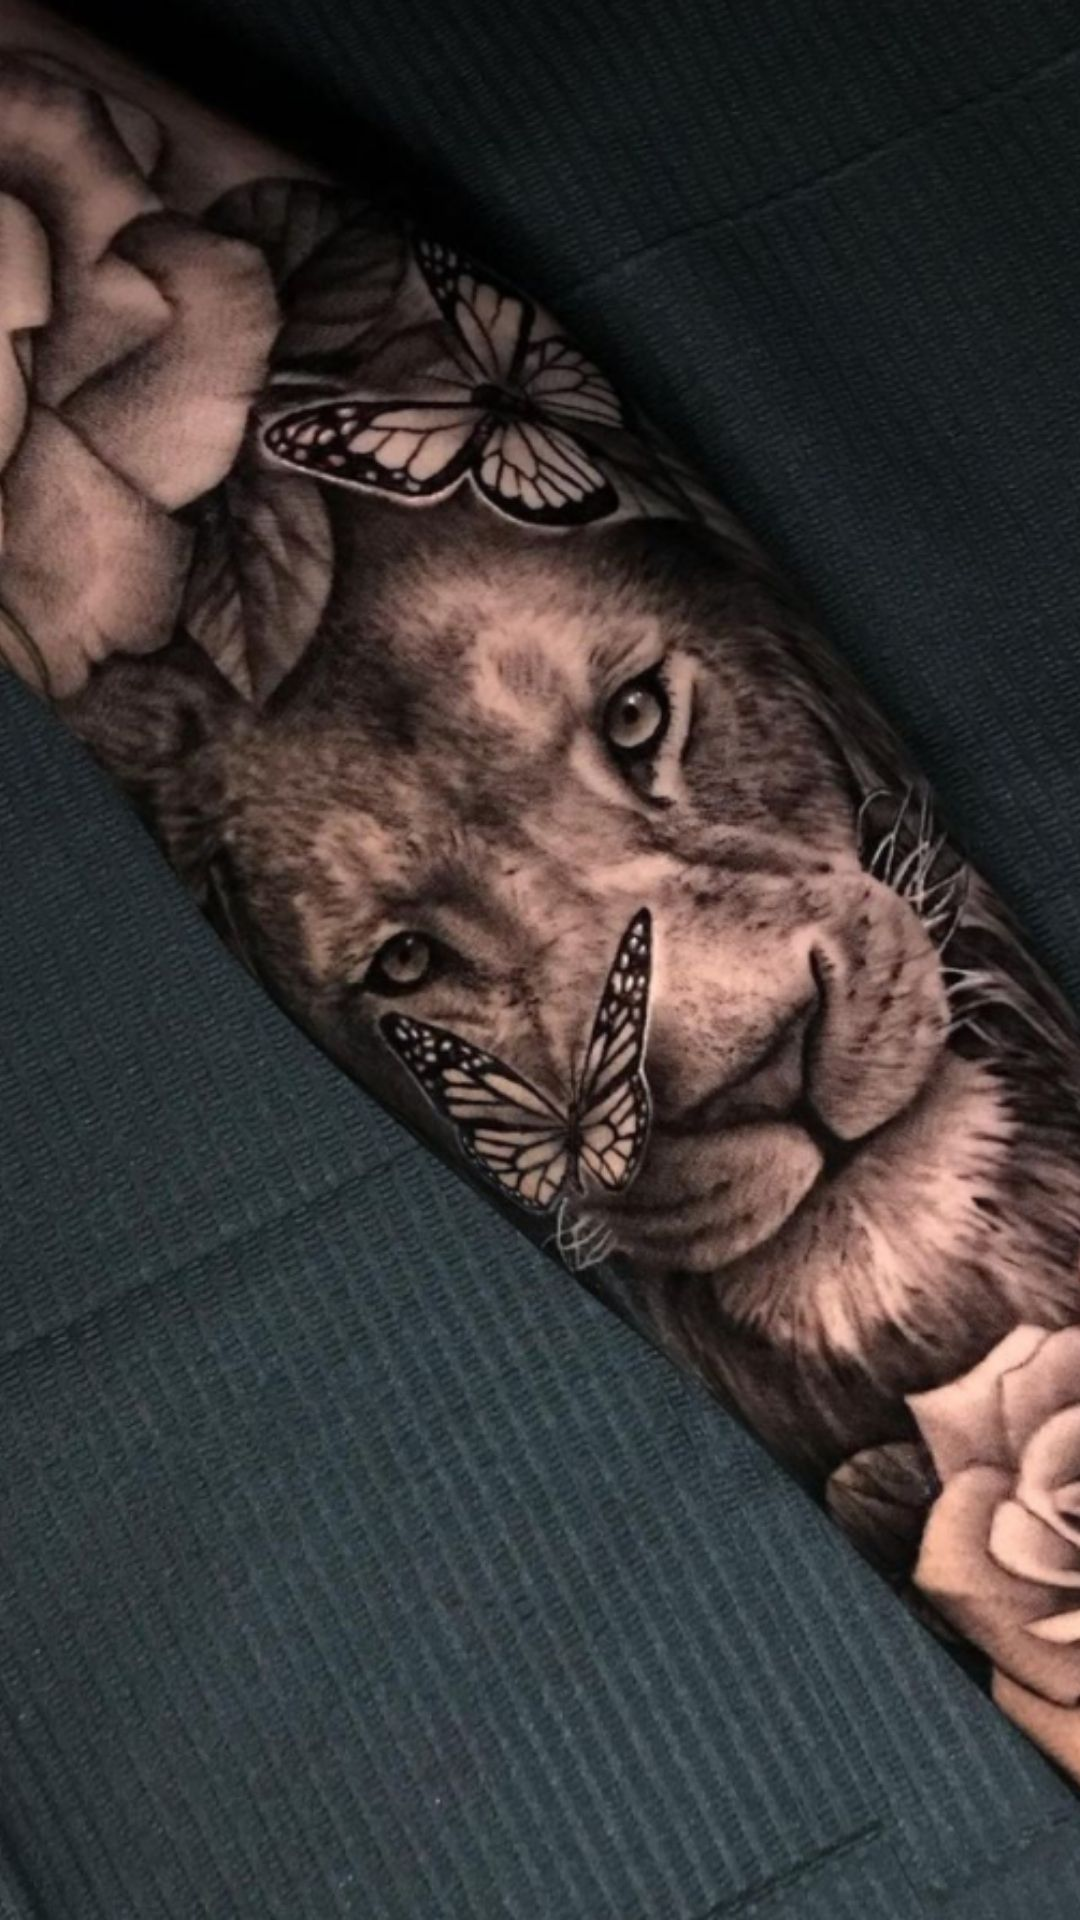 Eye-catching Lion tattoo ideas. I thought you might try it